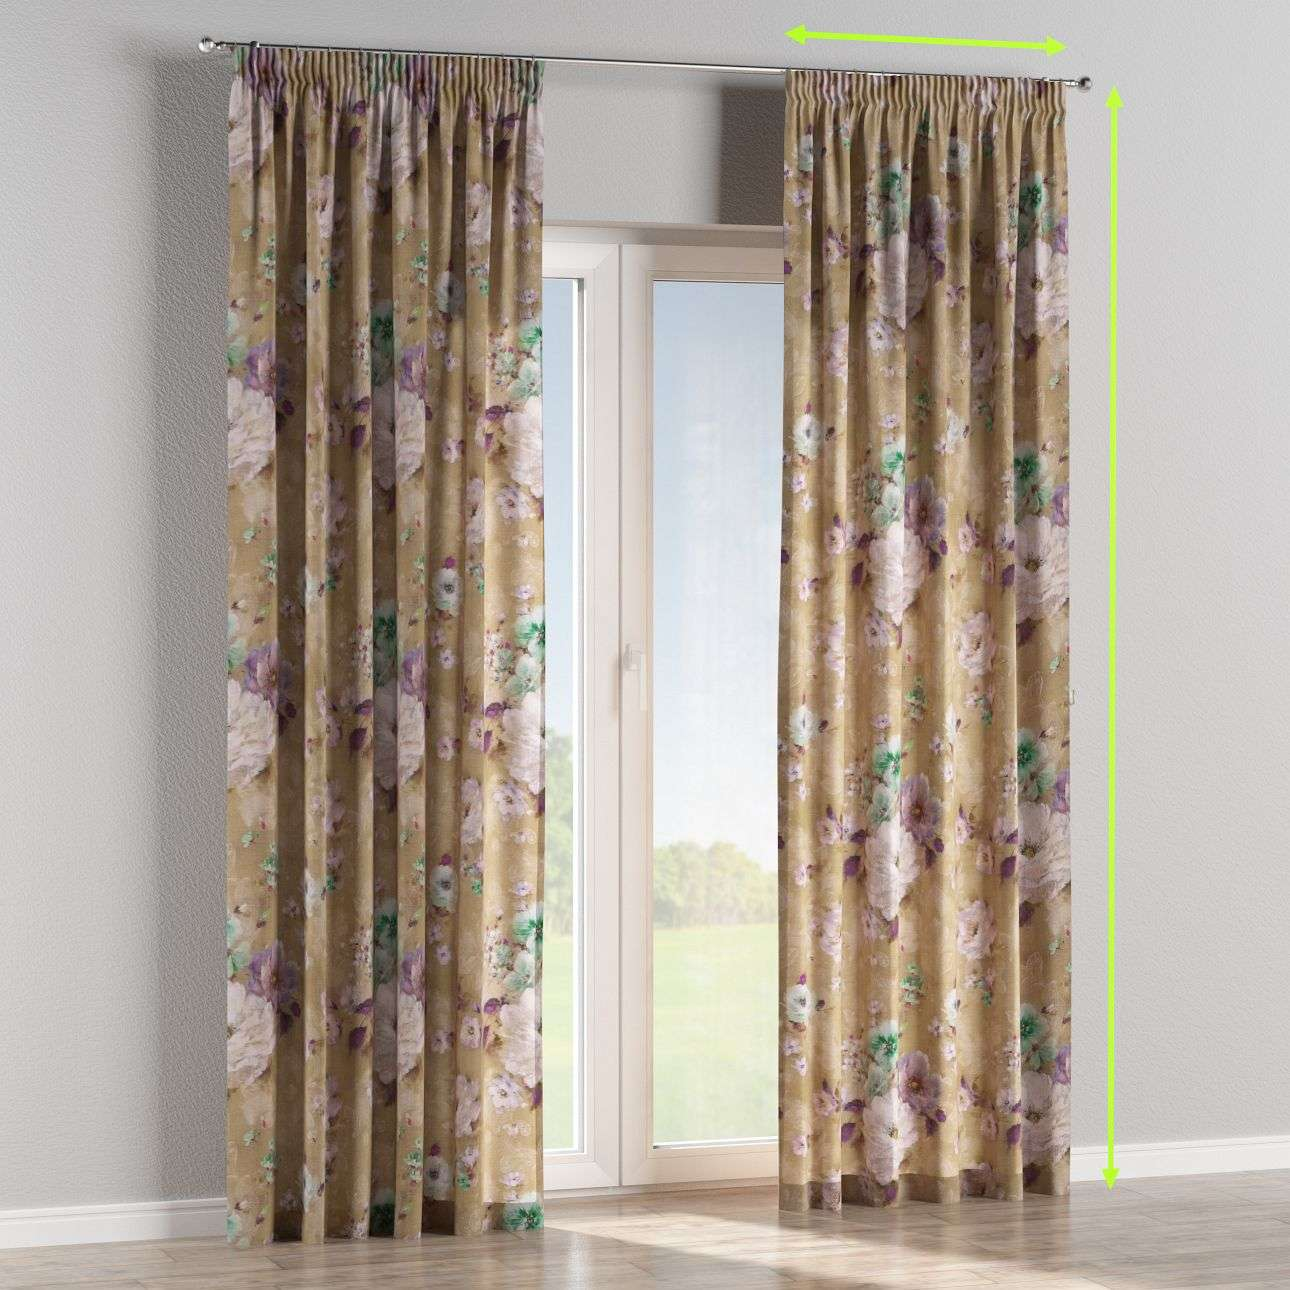 Pencil pleat lined curtains in collection Monet, fabric: 137-82